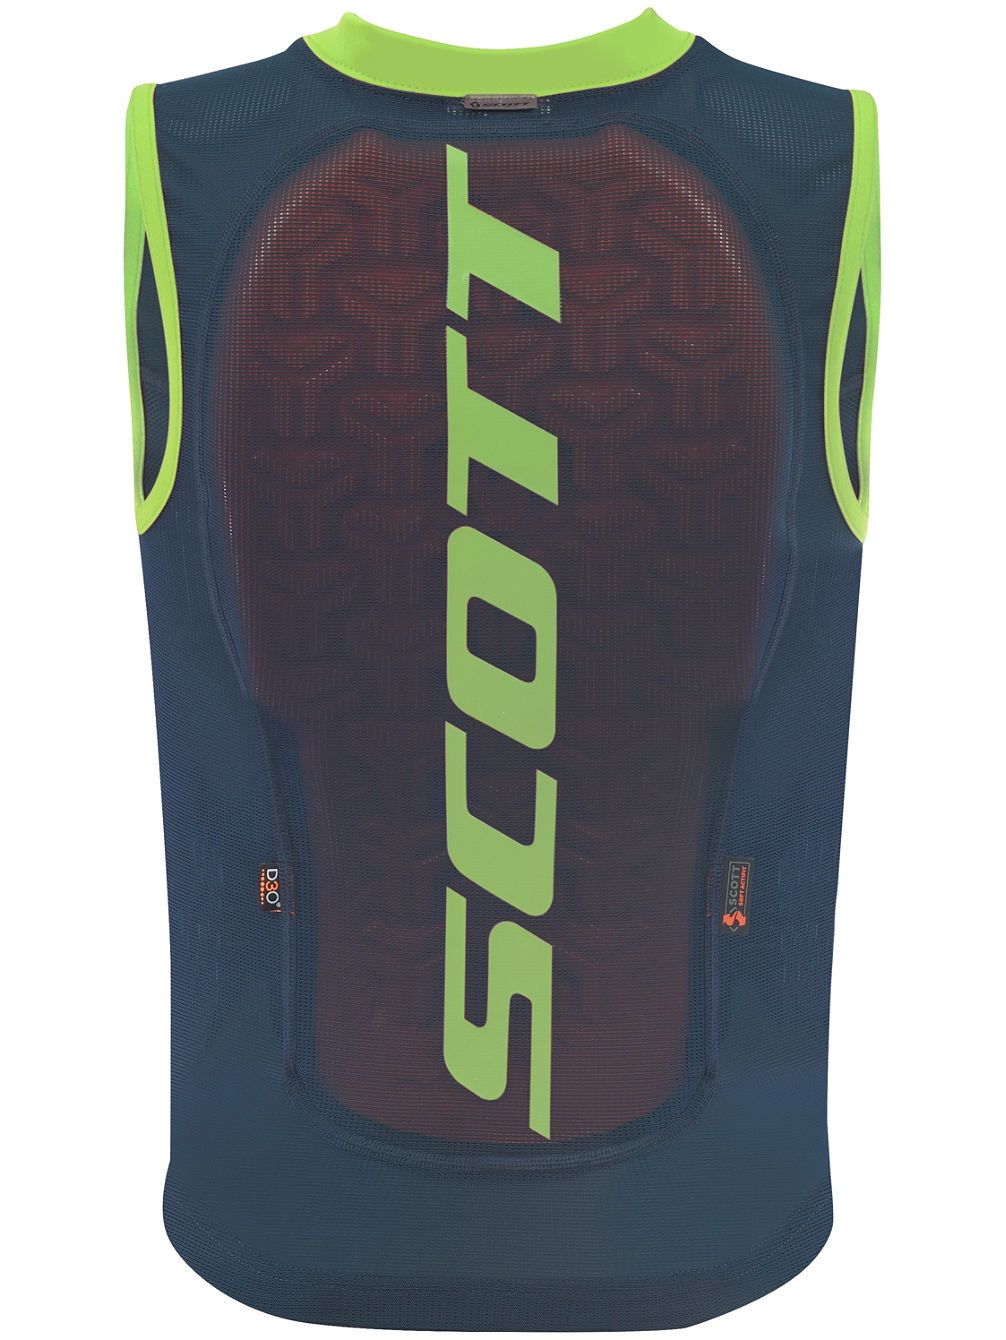 Actifit Plus Vest Protector Youth